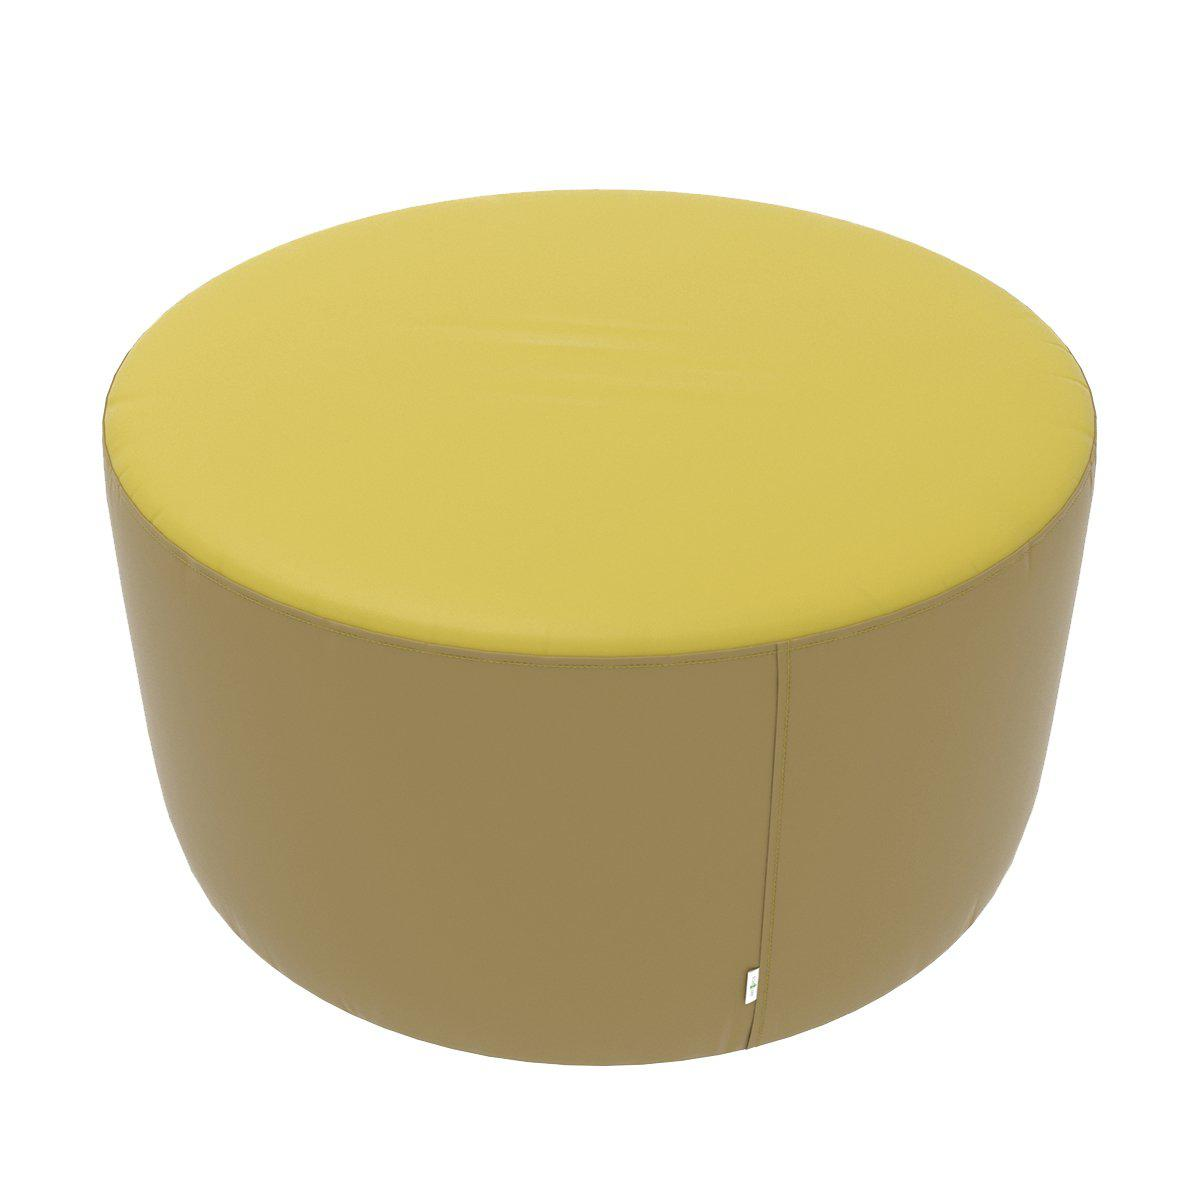 "Fomcore Ottoman Series 36"" Round Ottoman with 100% ALL-FOAM CORE, Antibacterial Vinyl Upholstery, LIFETIME WARRANTY"